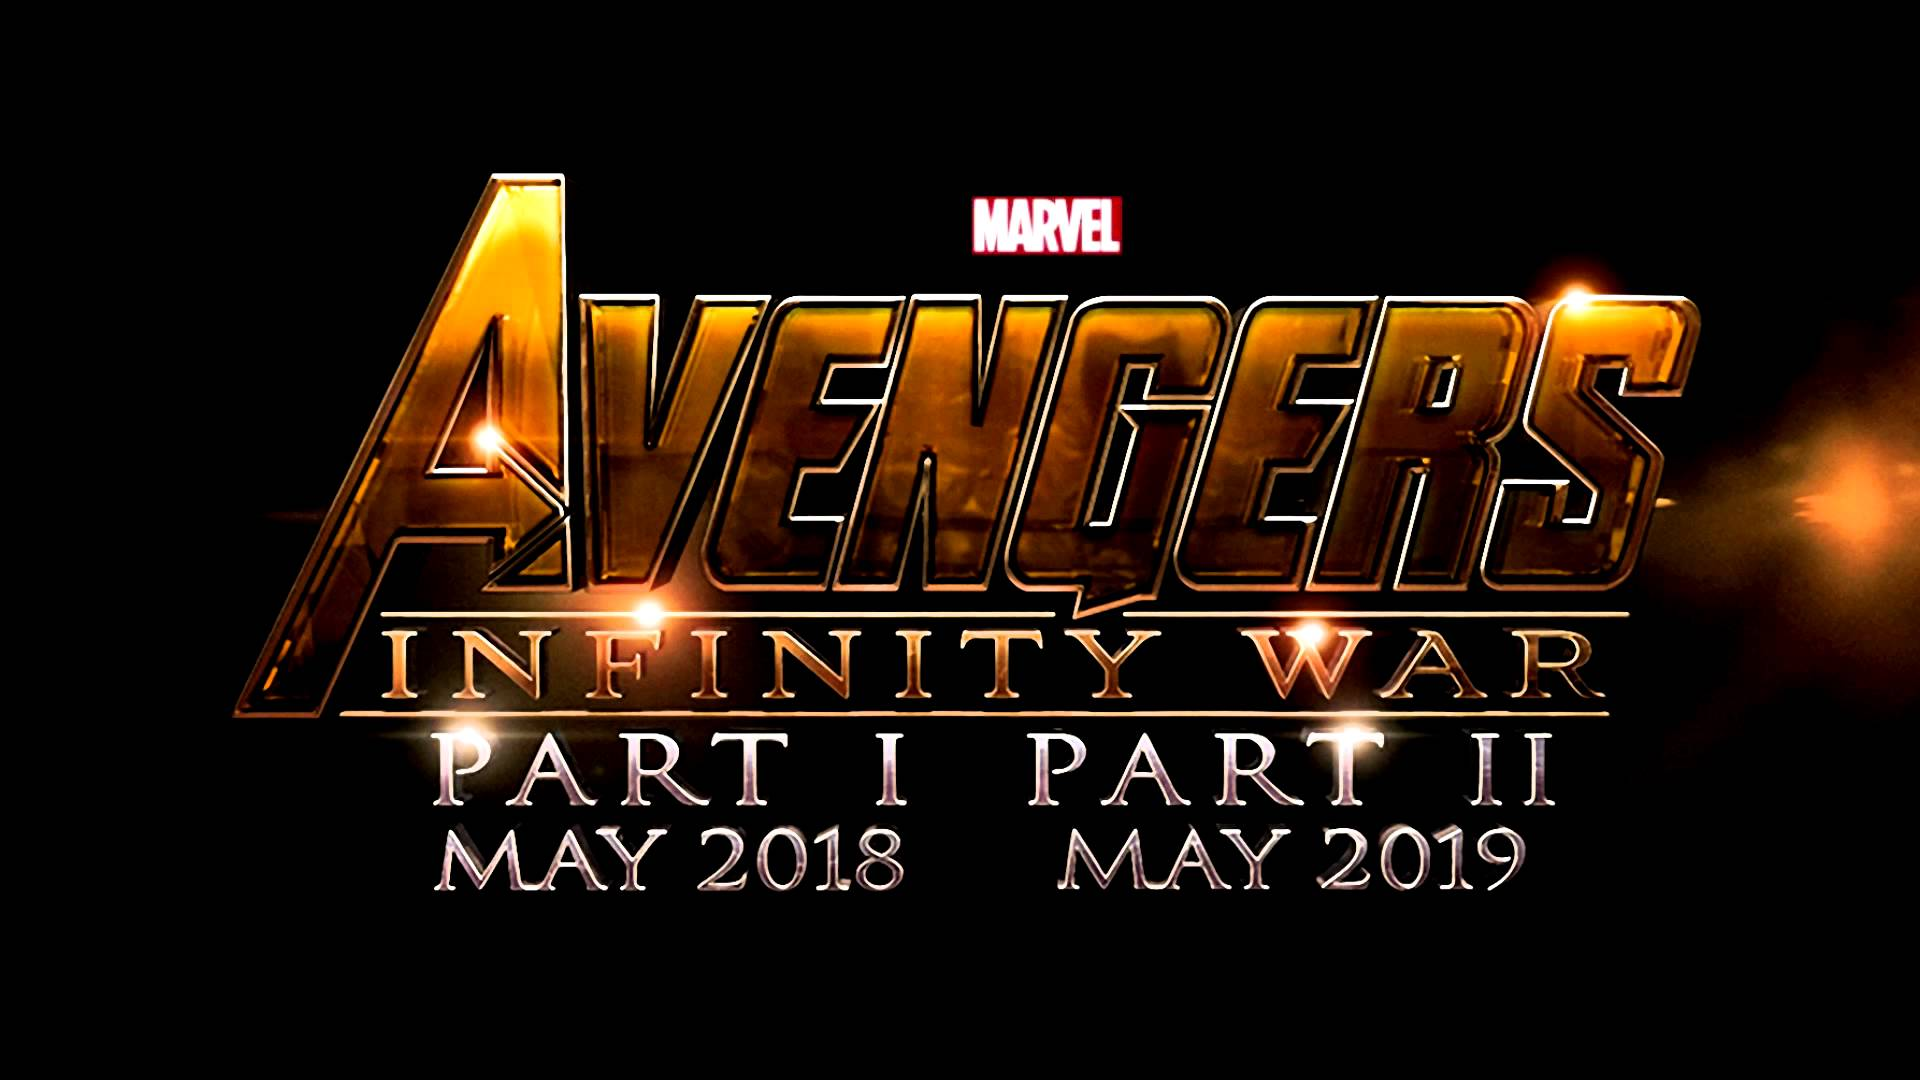 russo brothers discuss avengers: infinity war characters